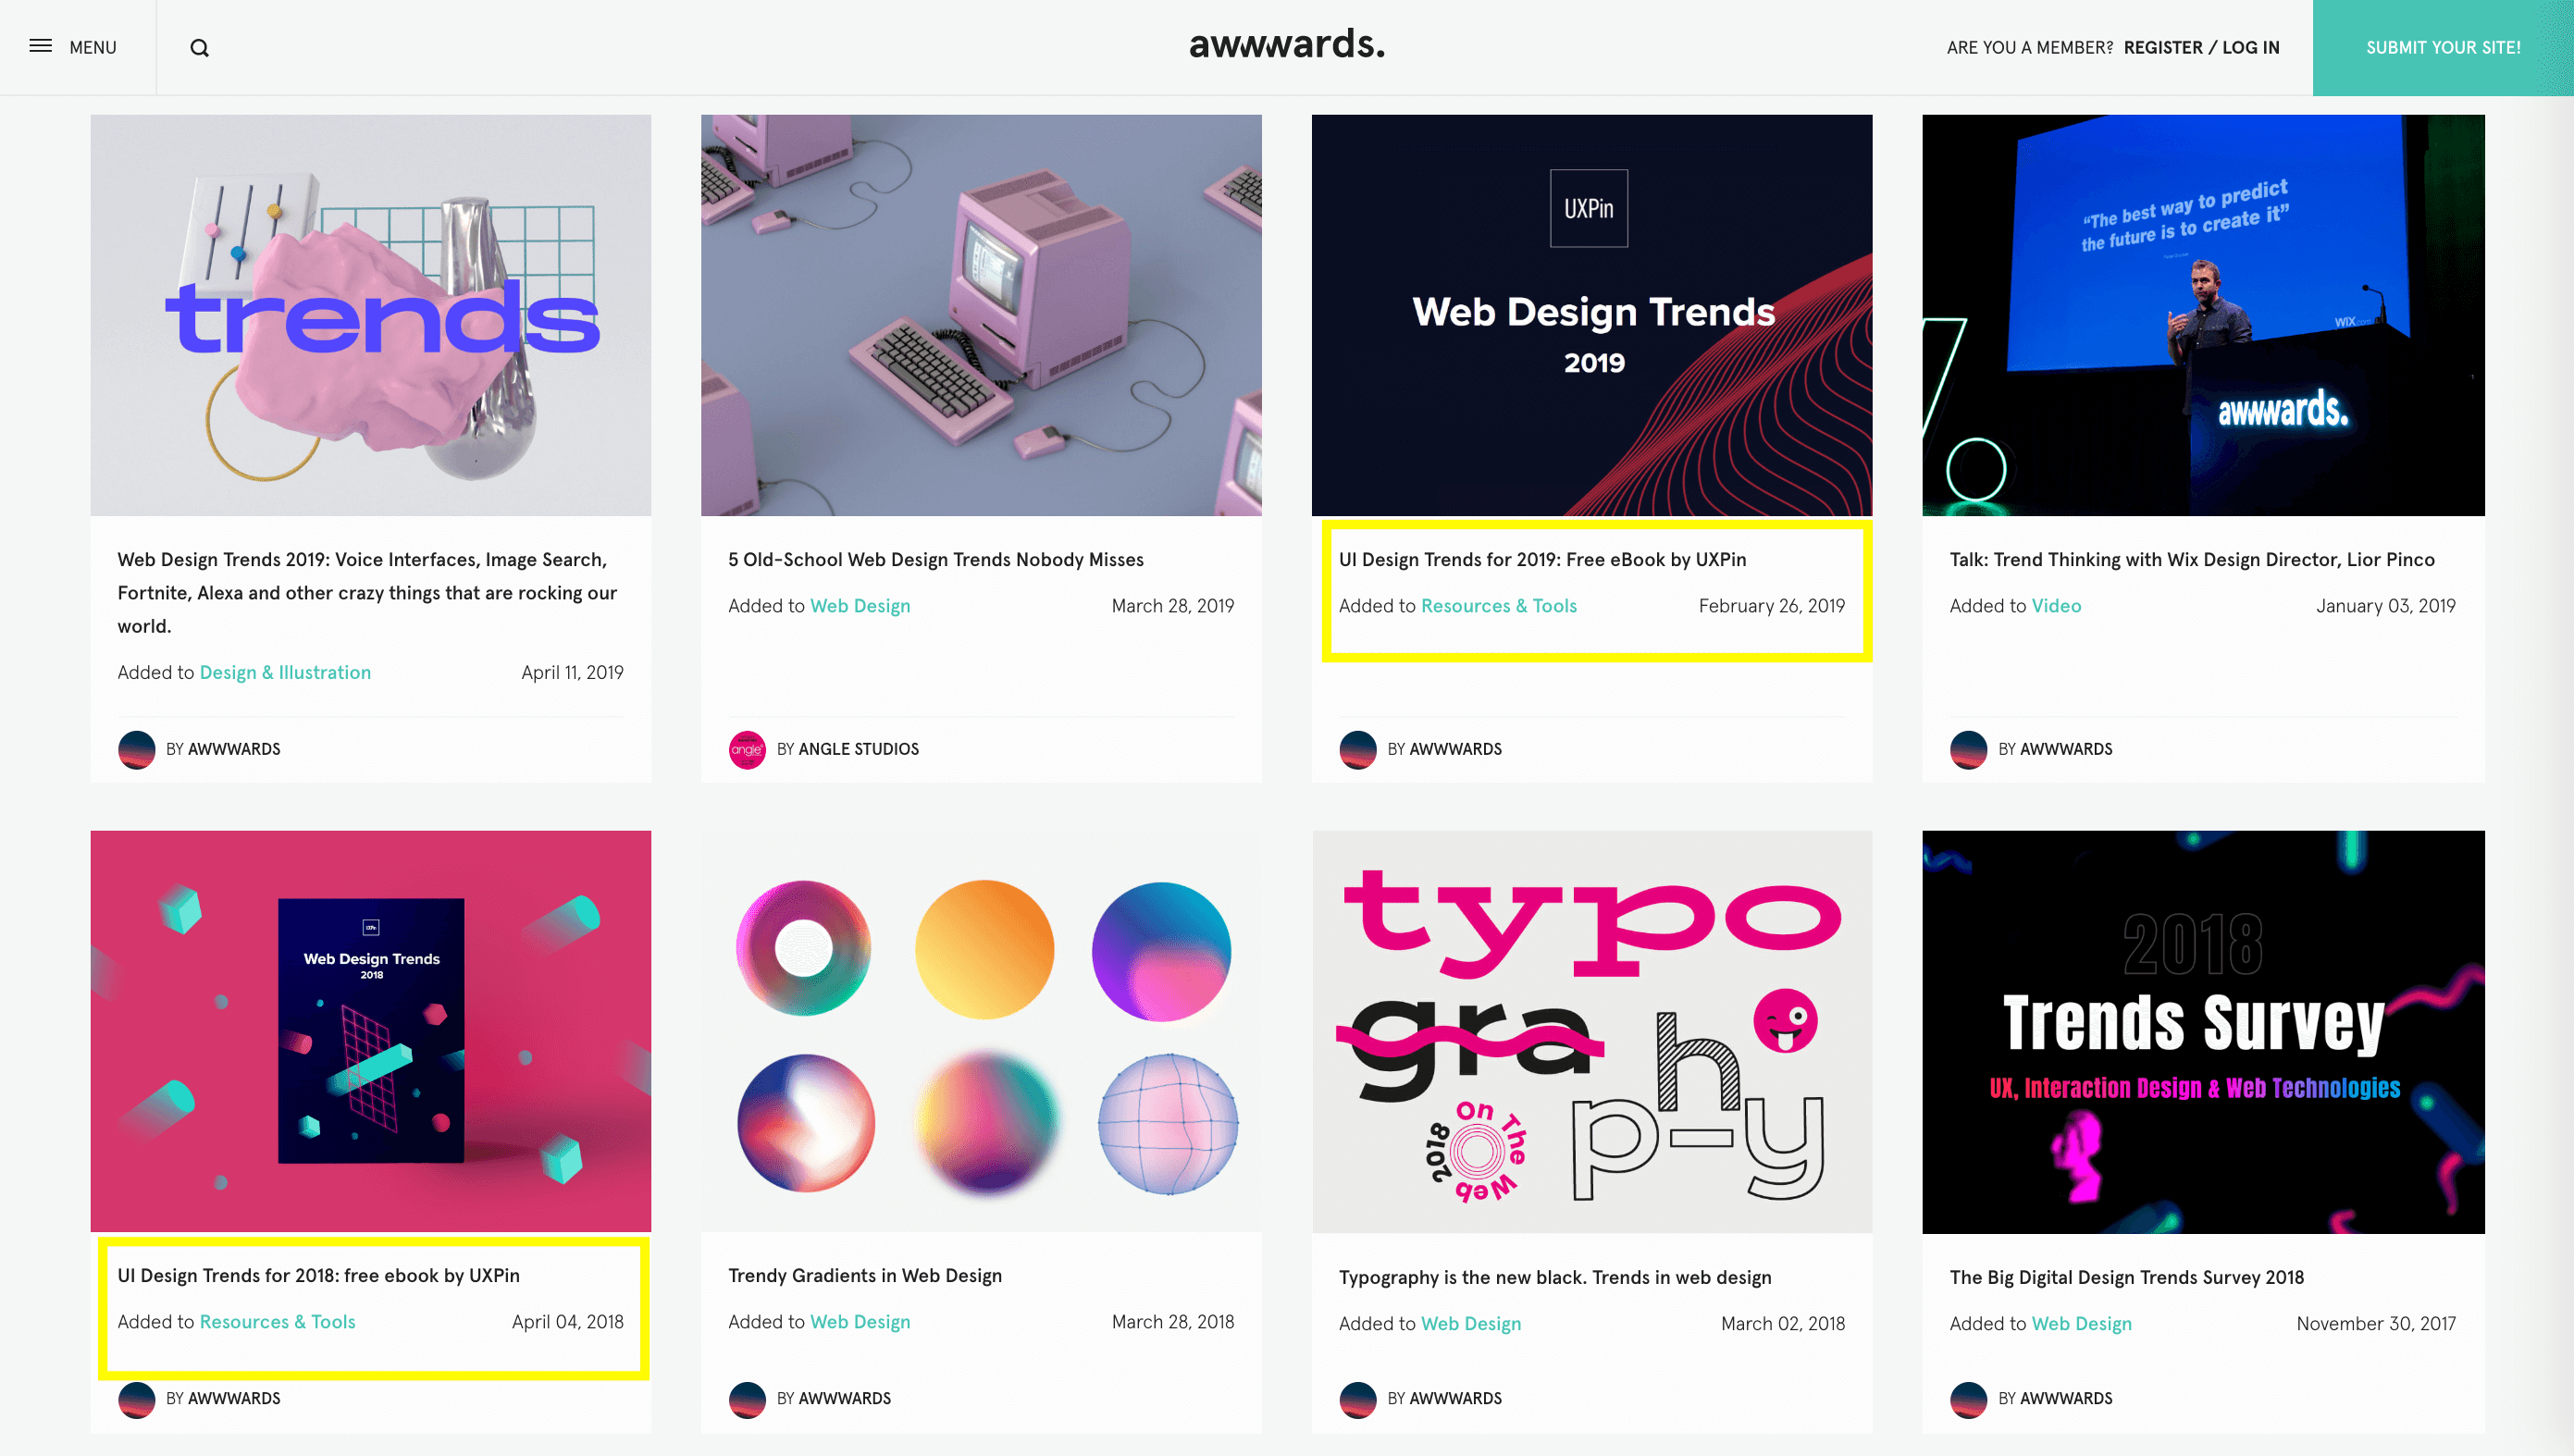 The Awwwards web design magazine puts out an annual e-book on current design trends.